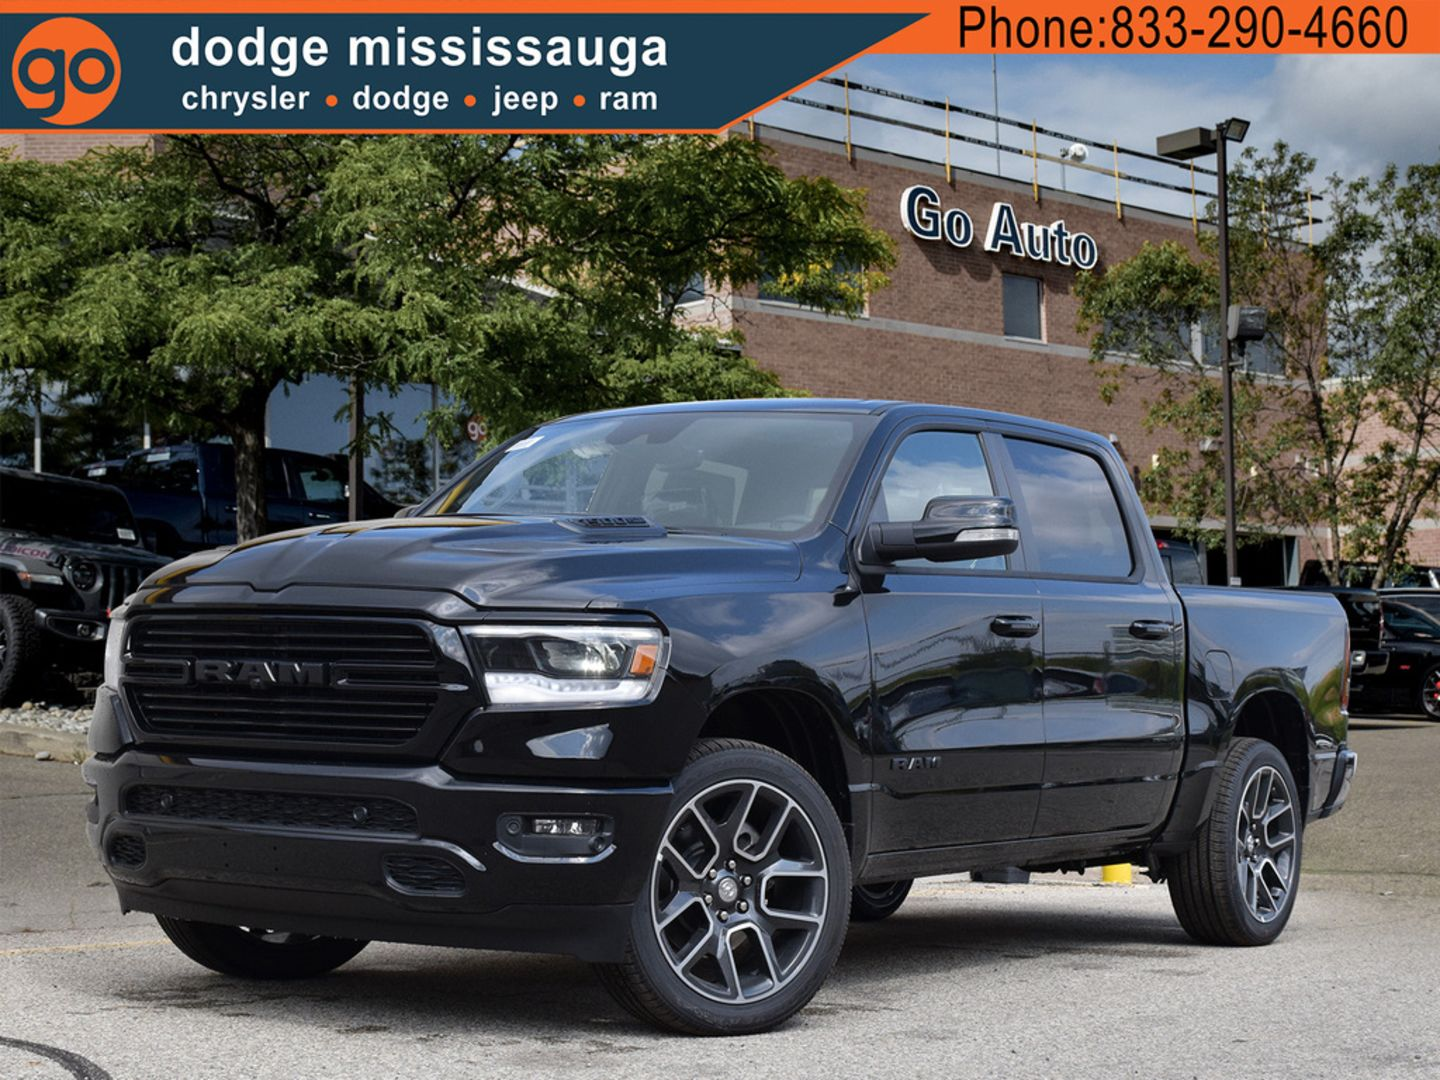 2020 Dodge Ram 1500 Sport Shop Clothing Shoes Online